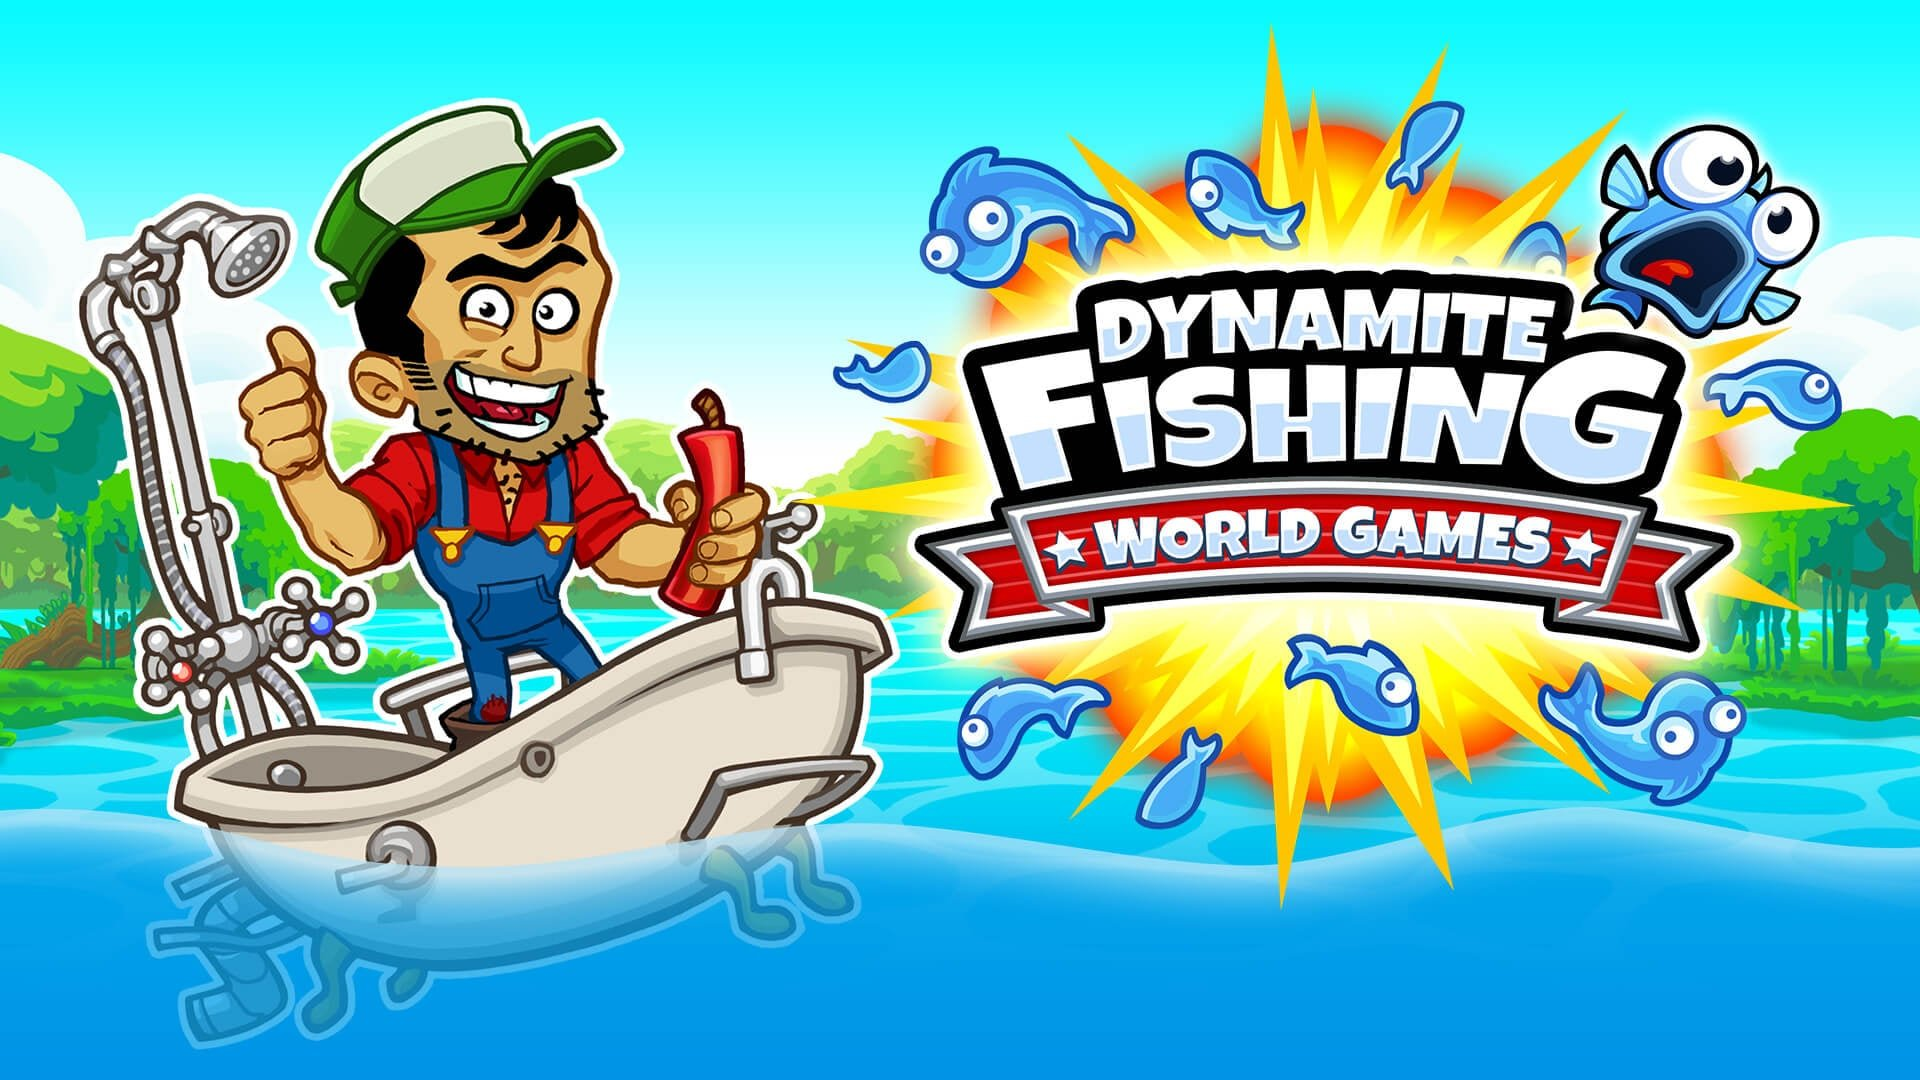 Dynamite fishing world games coming to ps4 for Fishing world game